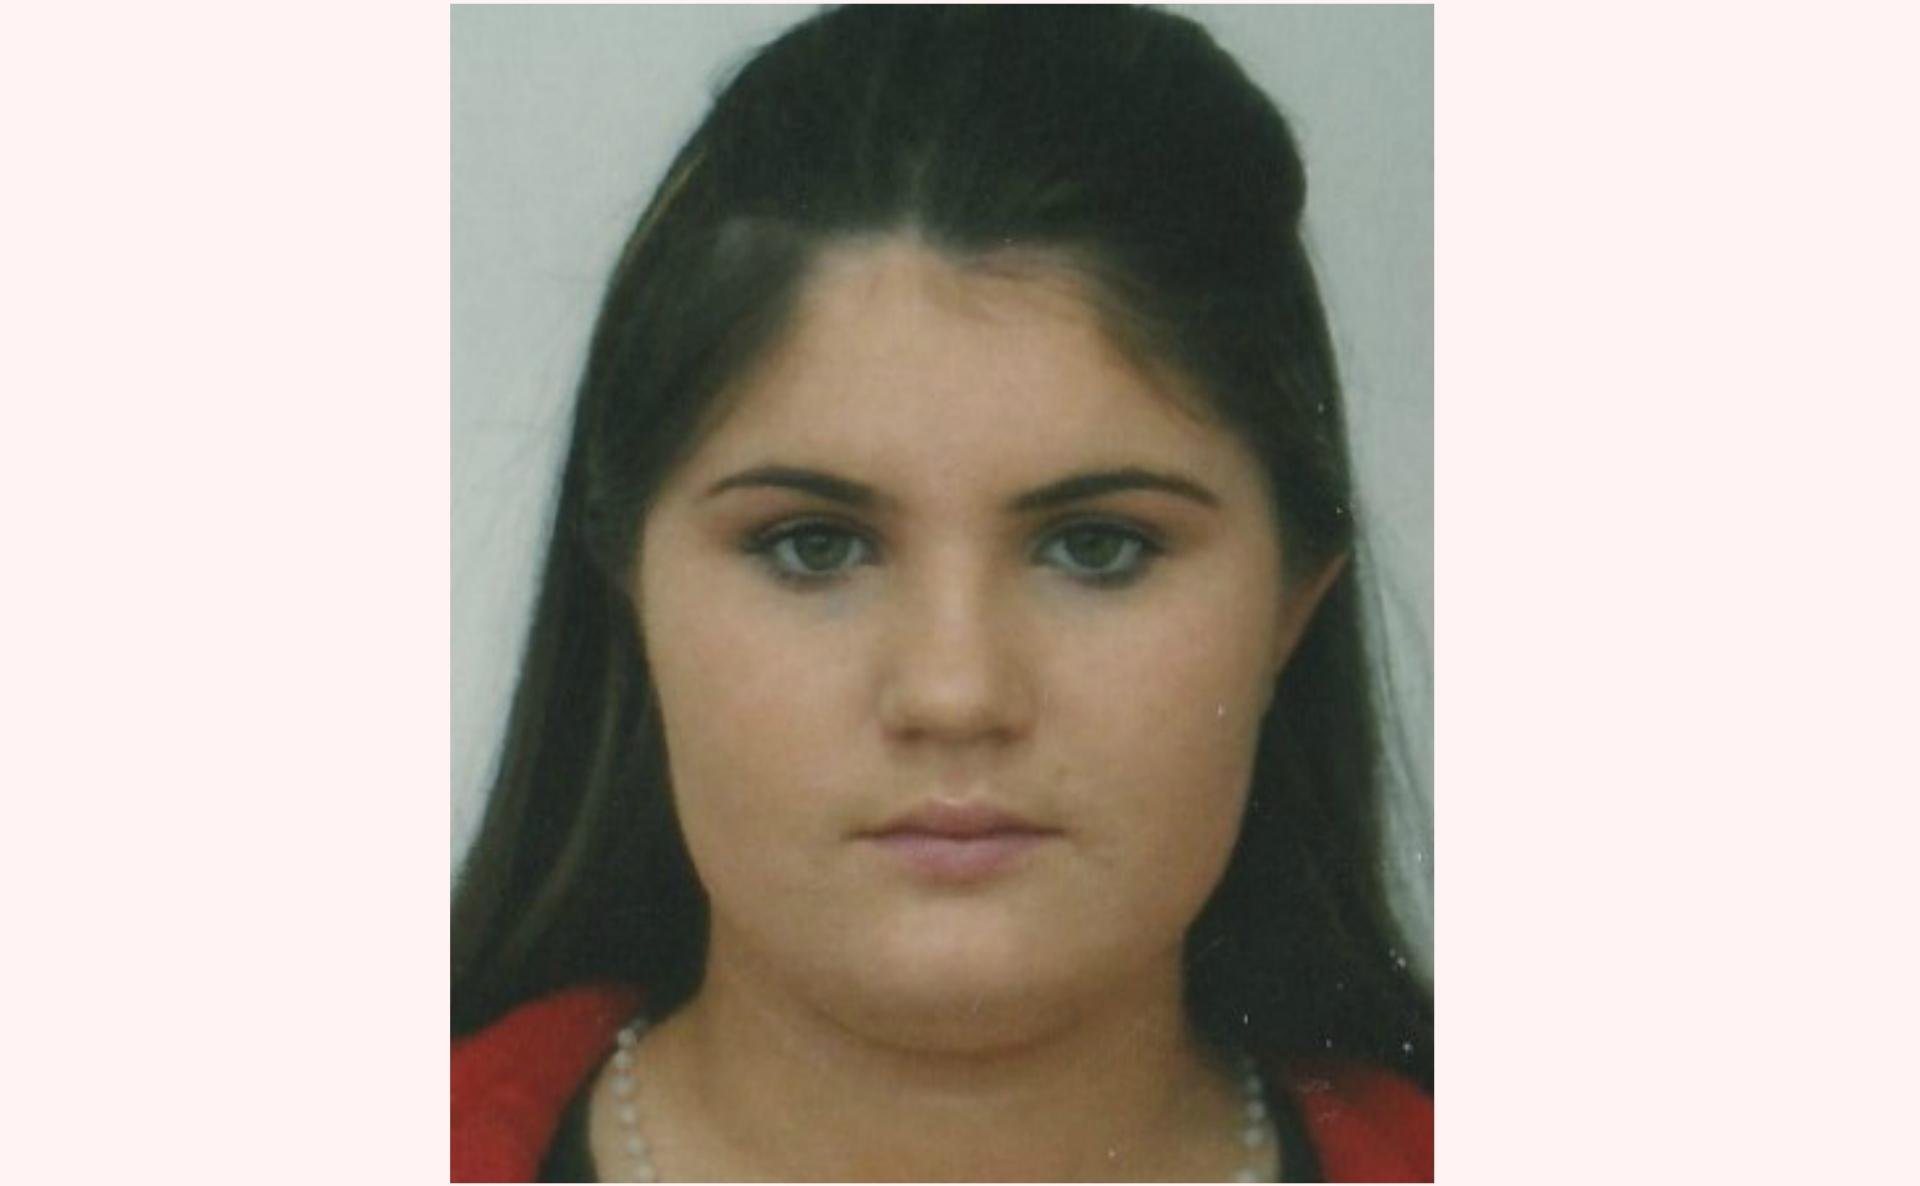 Teen missing from Cavan located safe and well